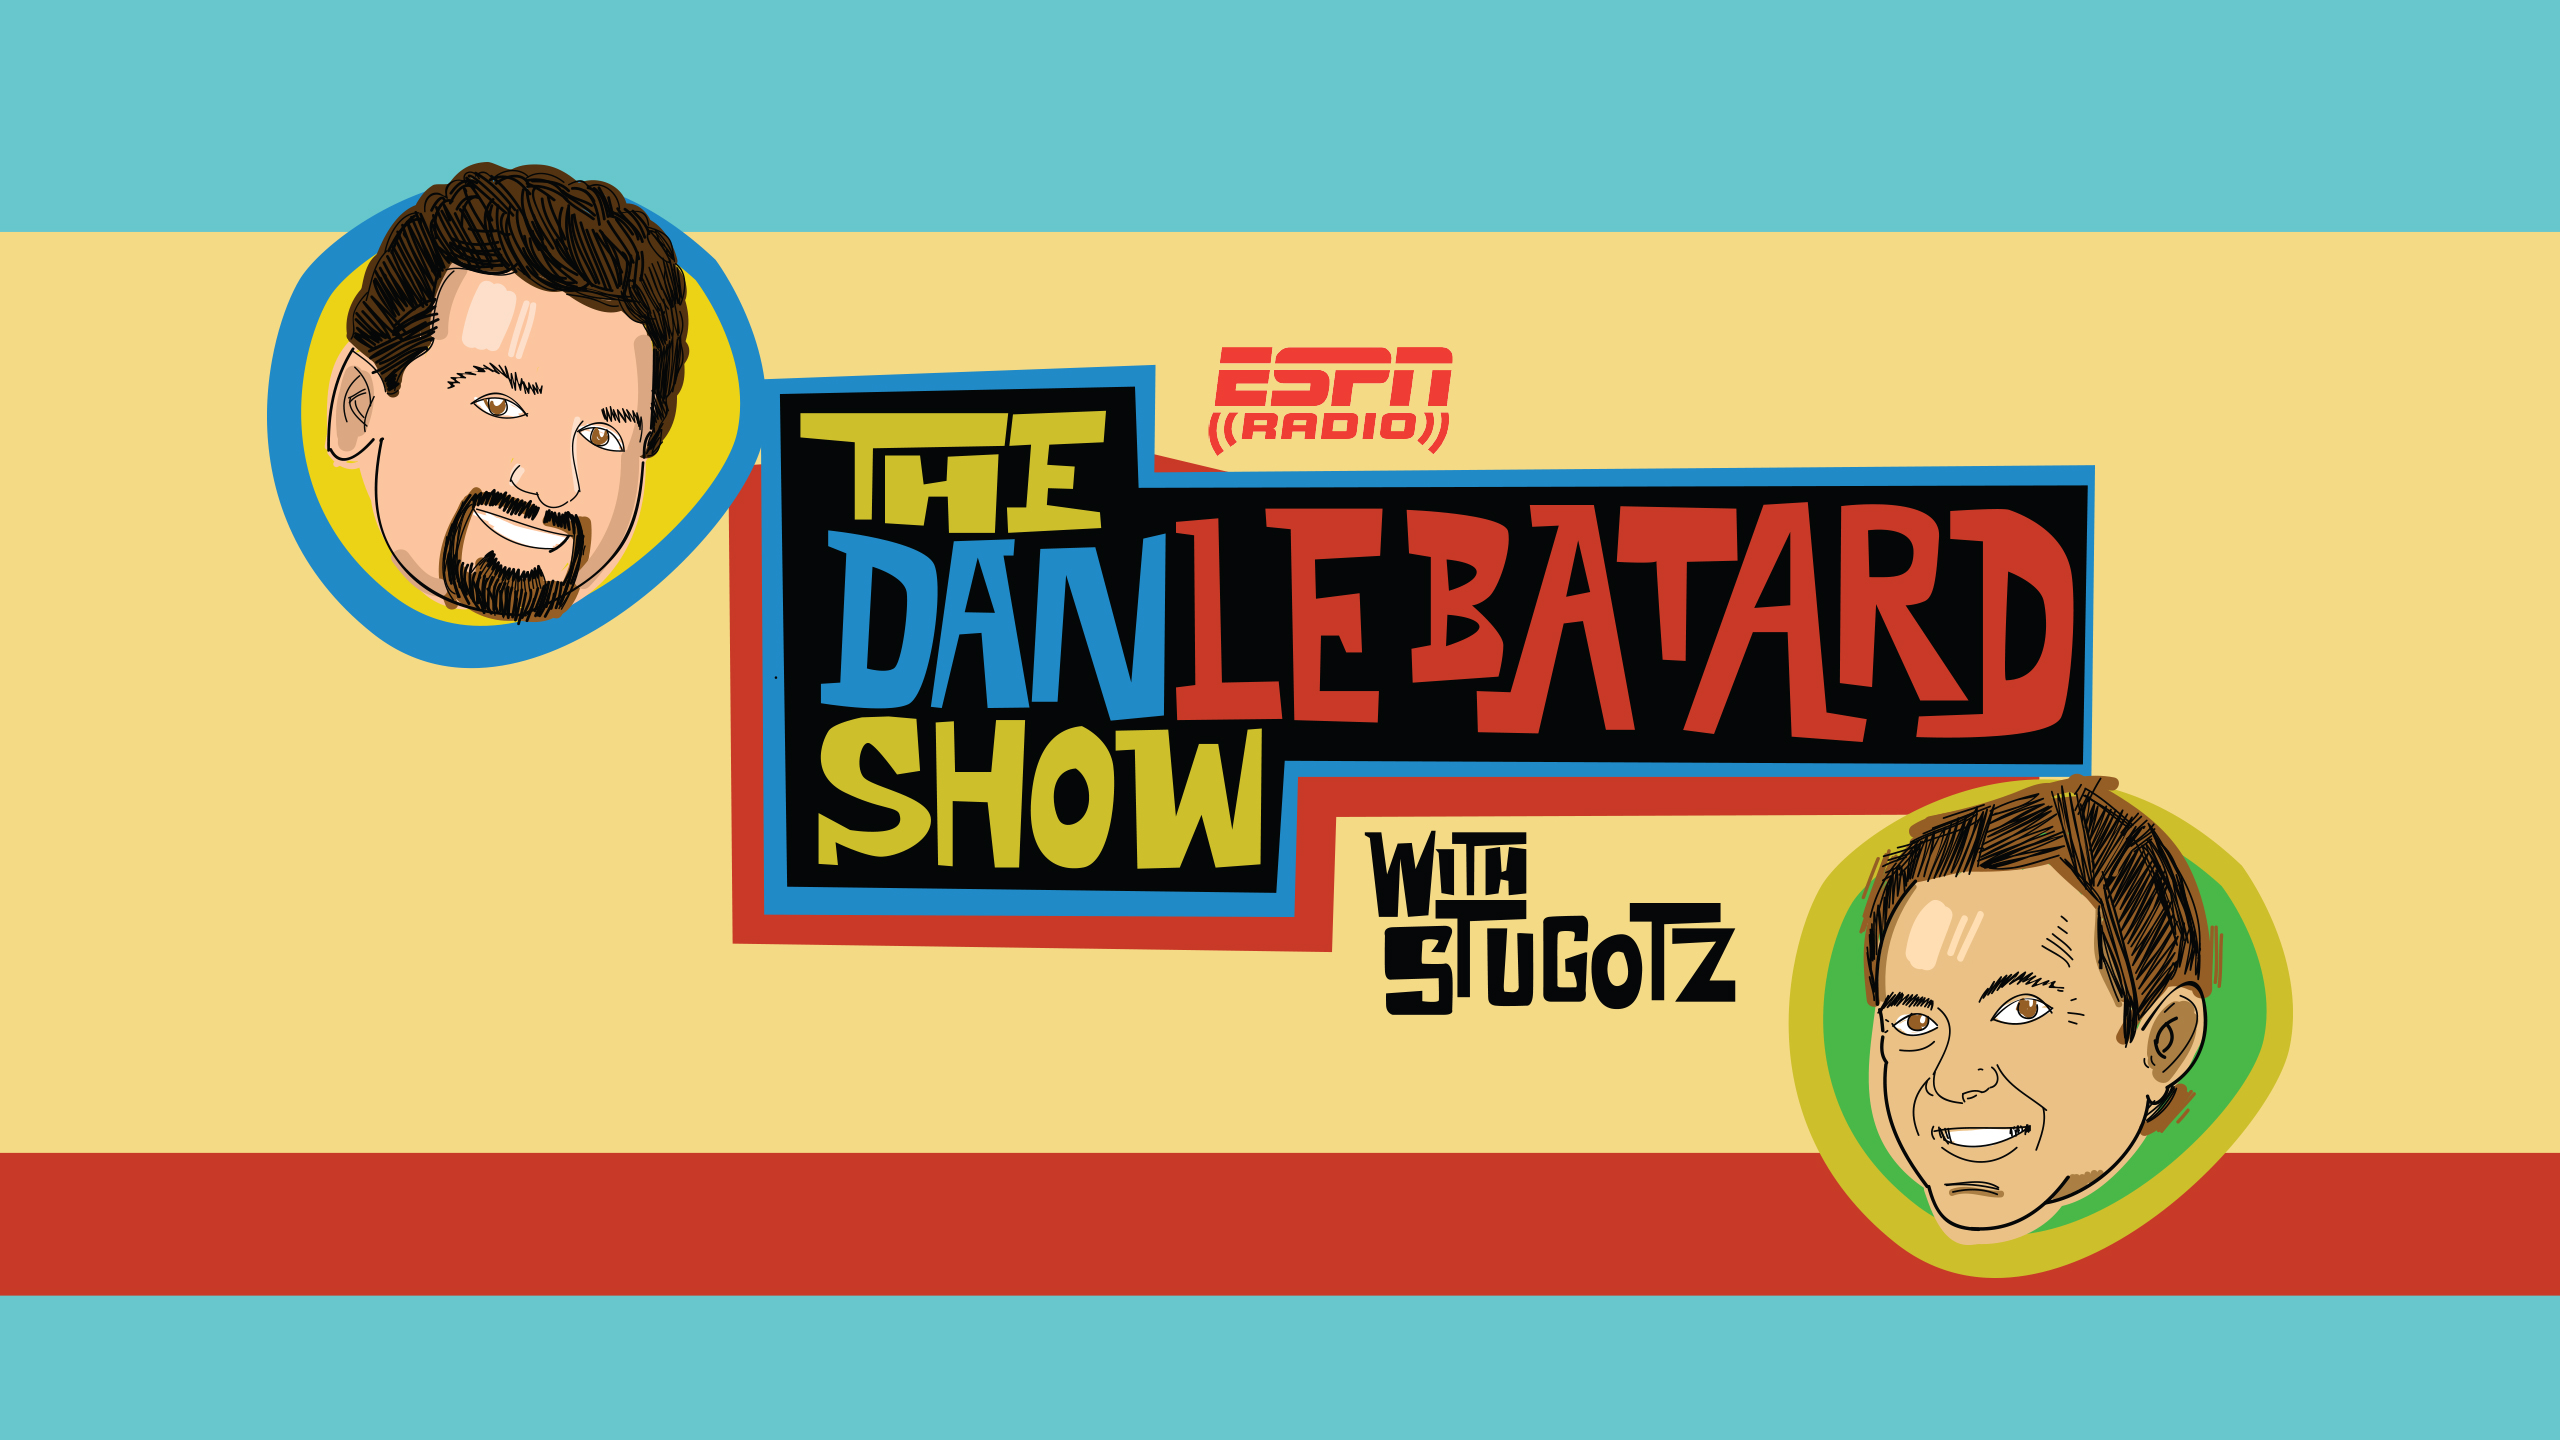 Wed, 10/17 - The Dan Le Batard Show with Stugotz Presented by Progressive